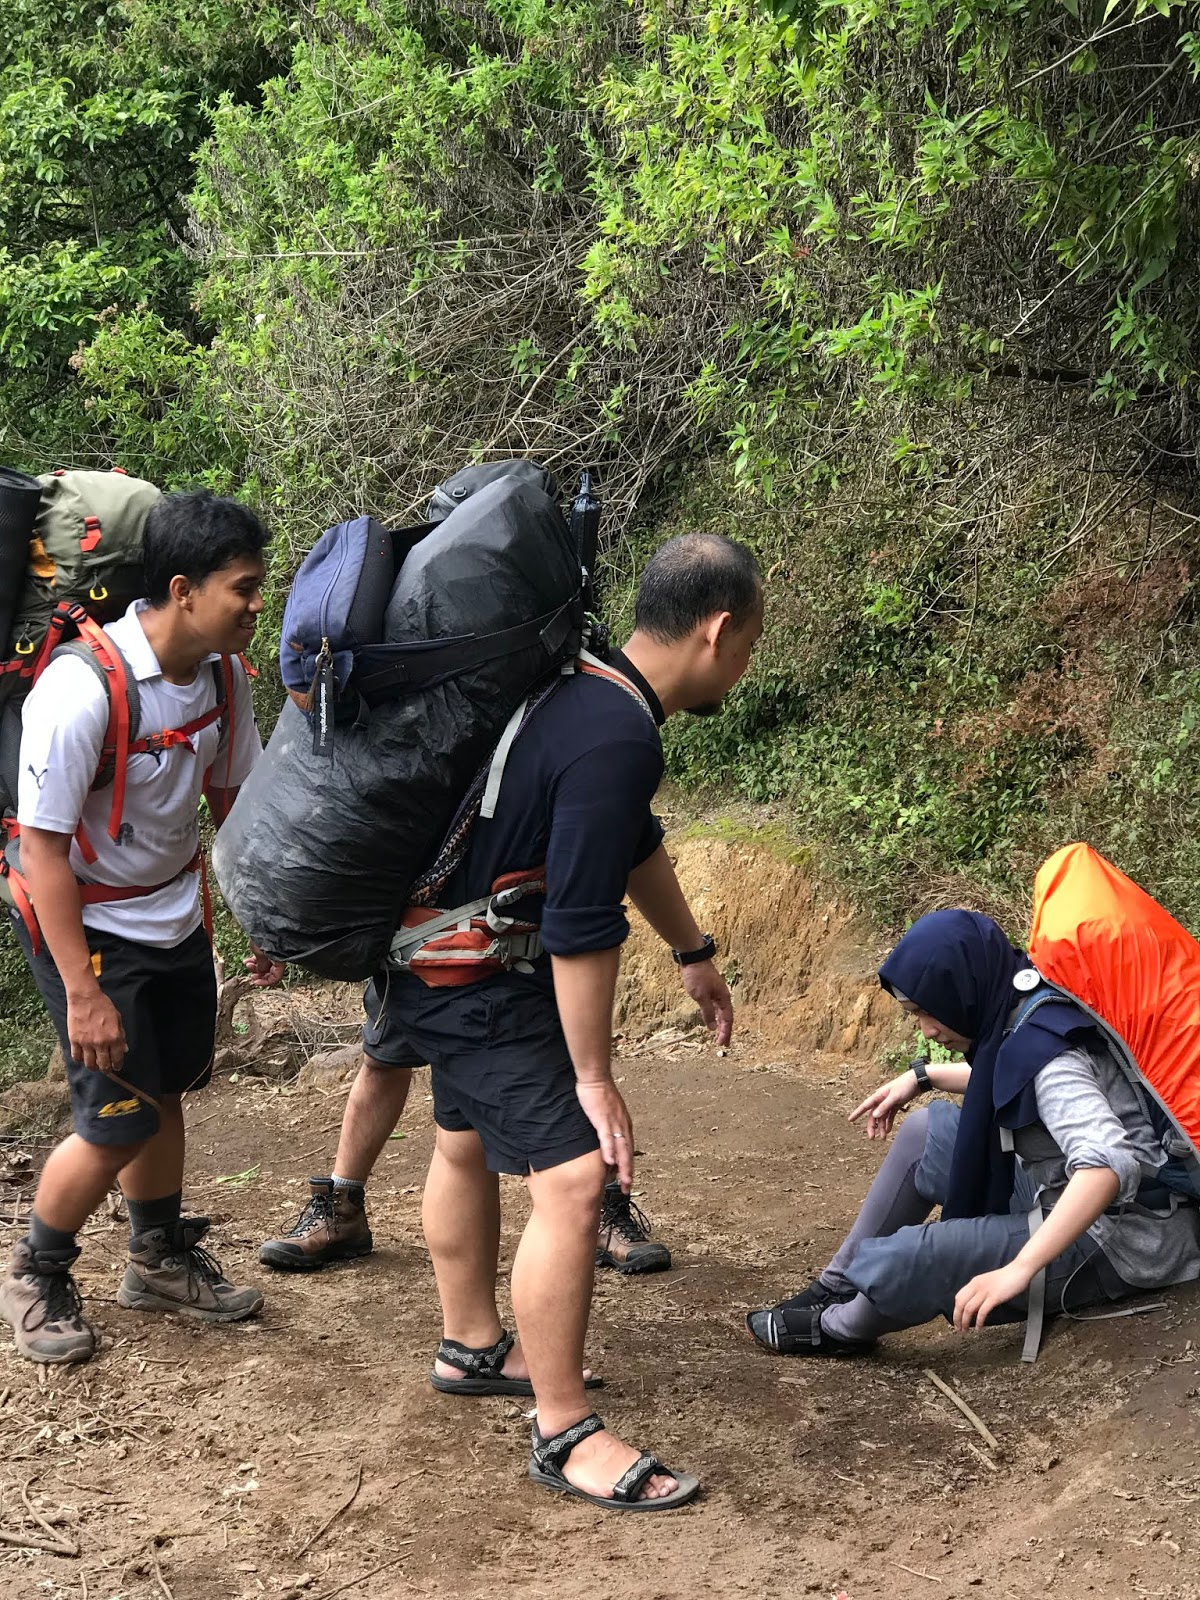 A Freedom to Get to Know Yourself - Merbabu